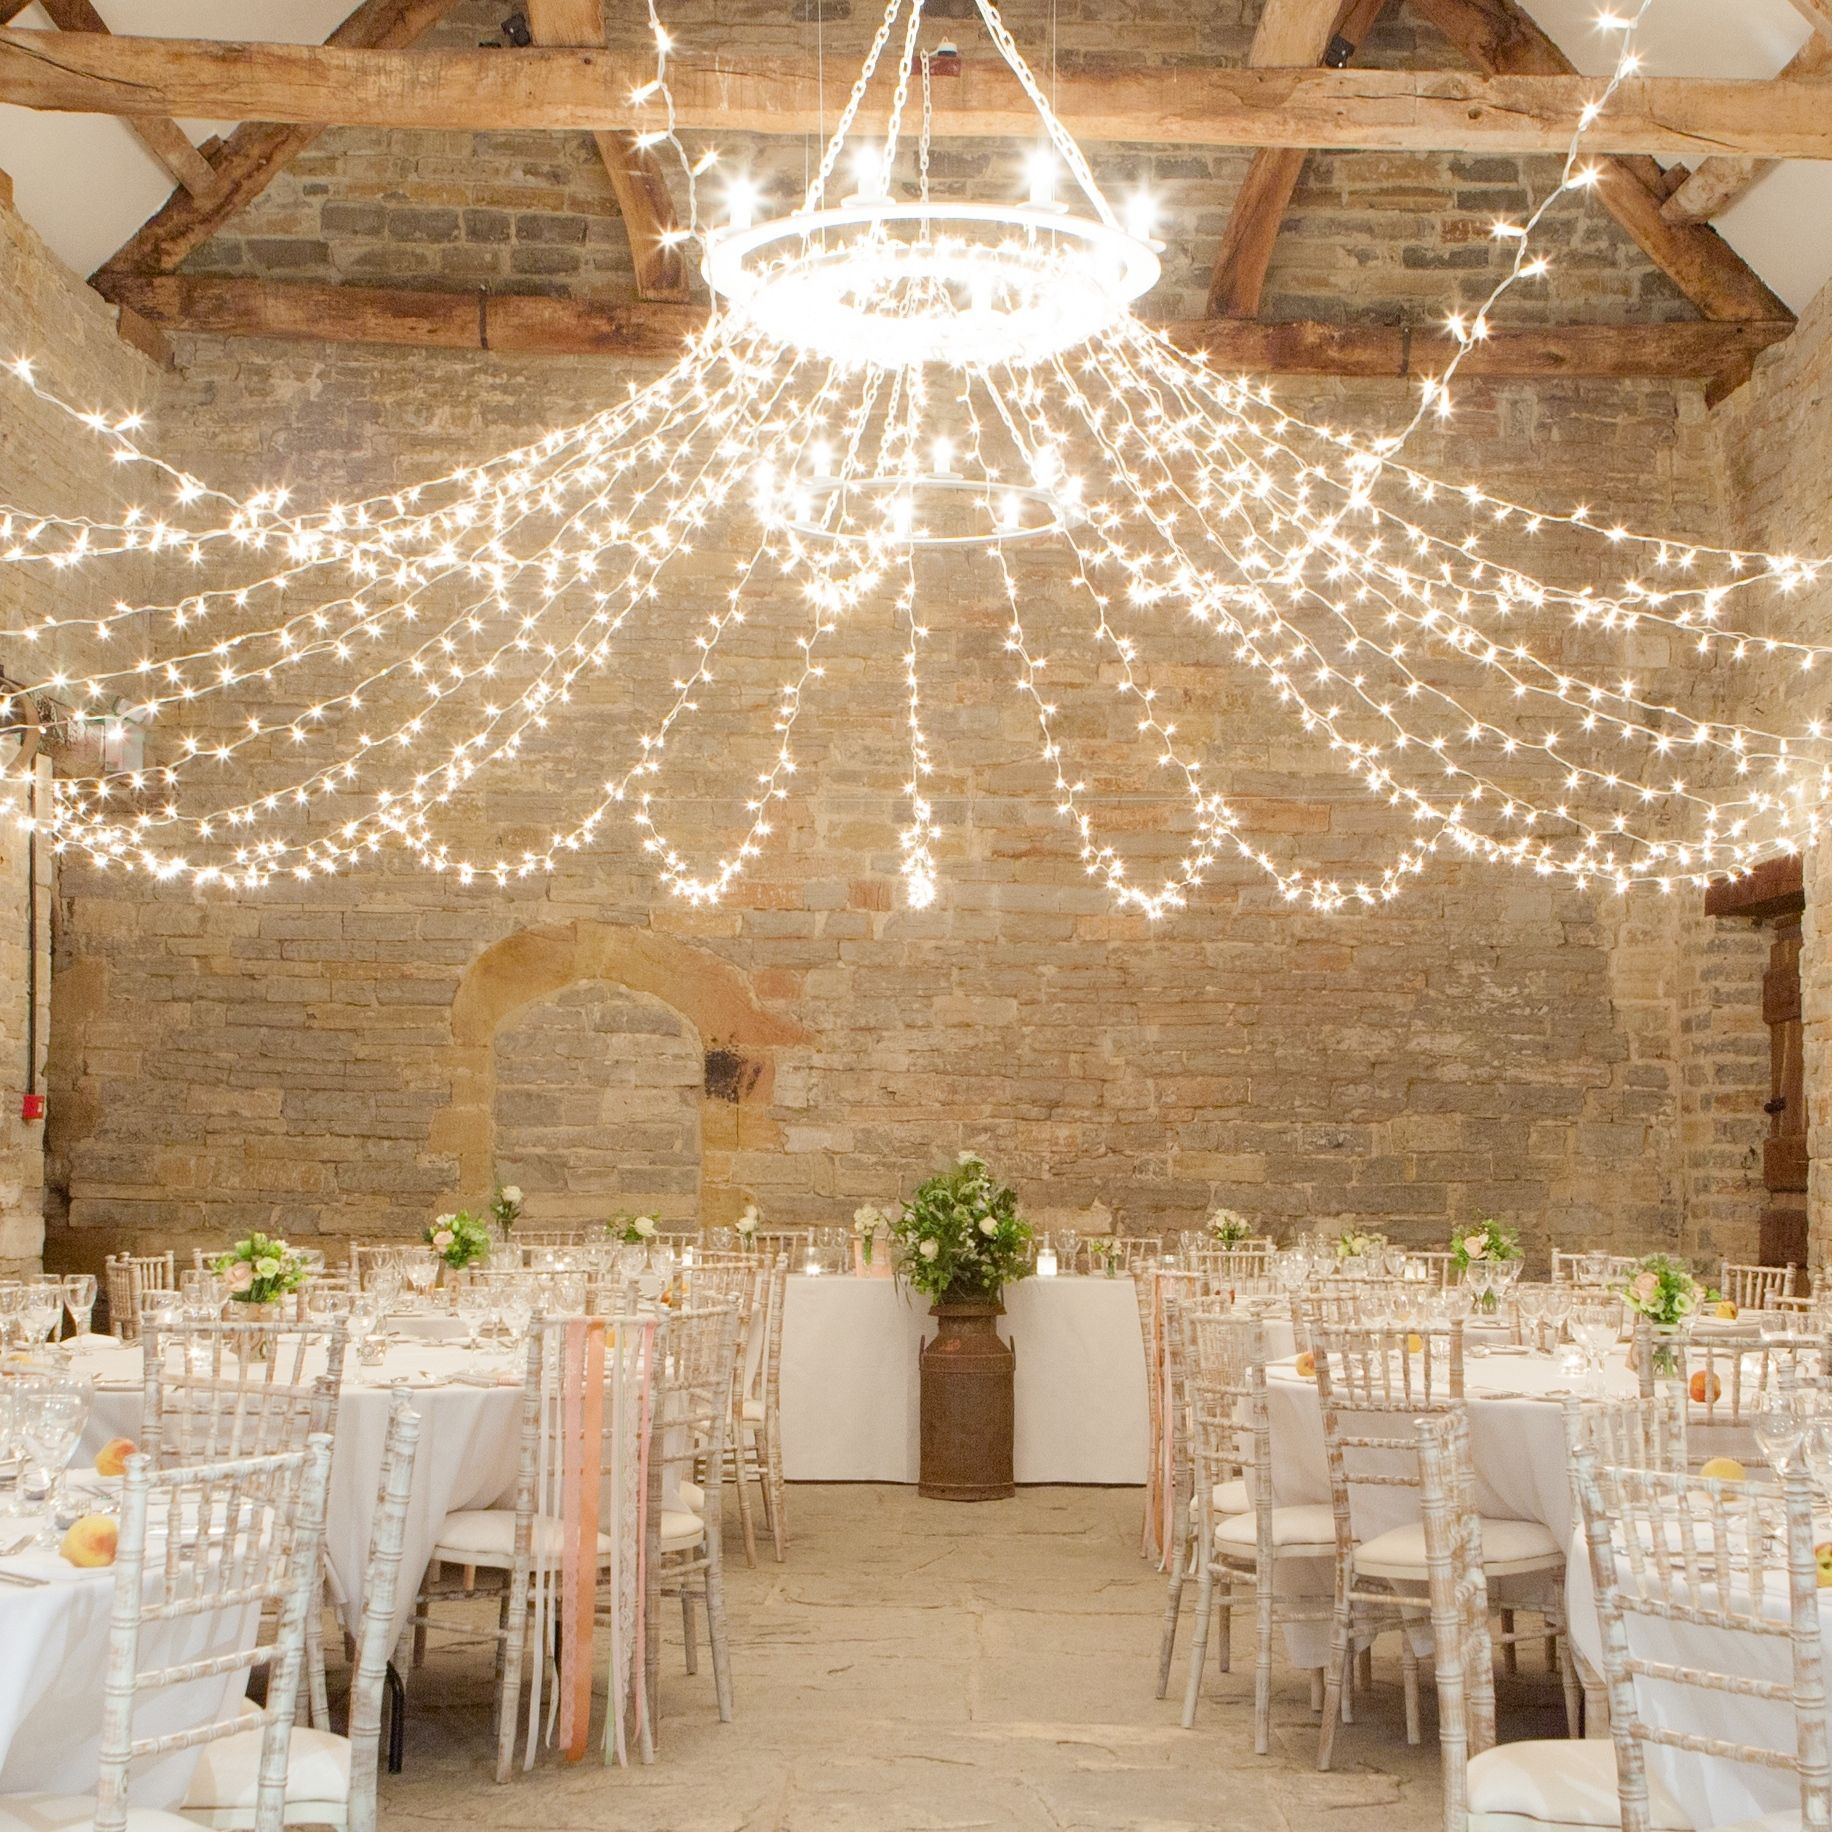 Rustic Elegant Barn Wedding Ideas: If You Are A Rustic Romance Kind Of Boy And Girl Then Look